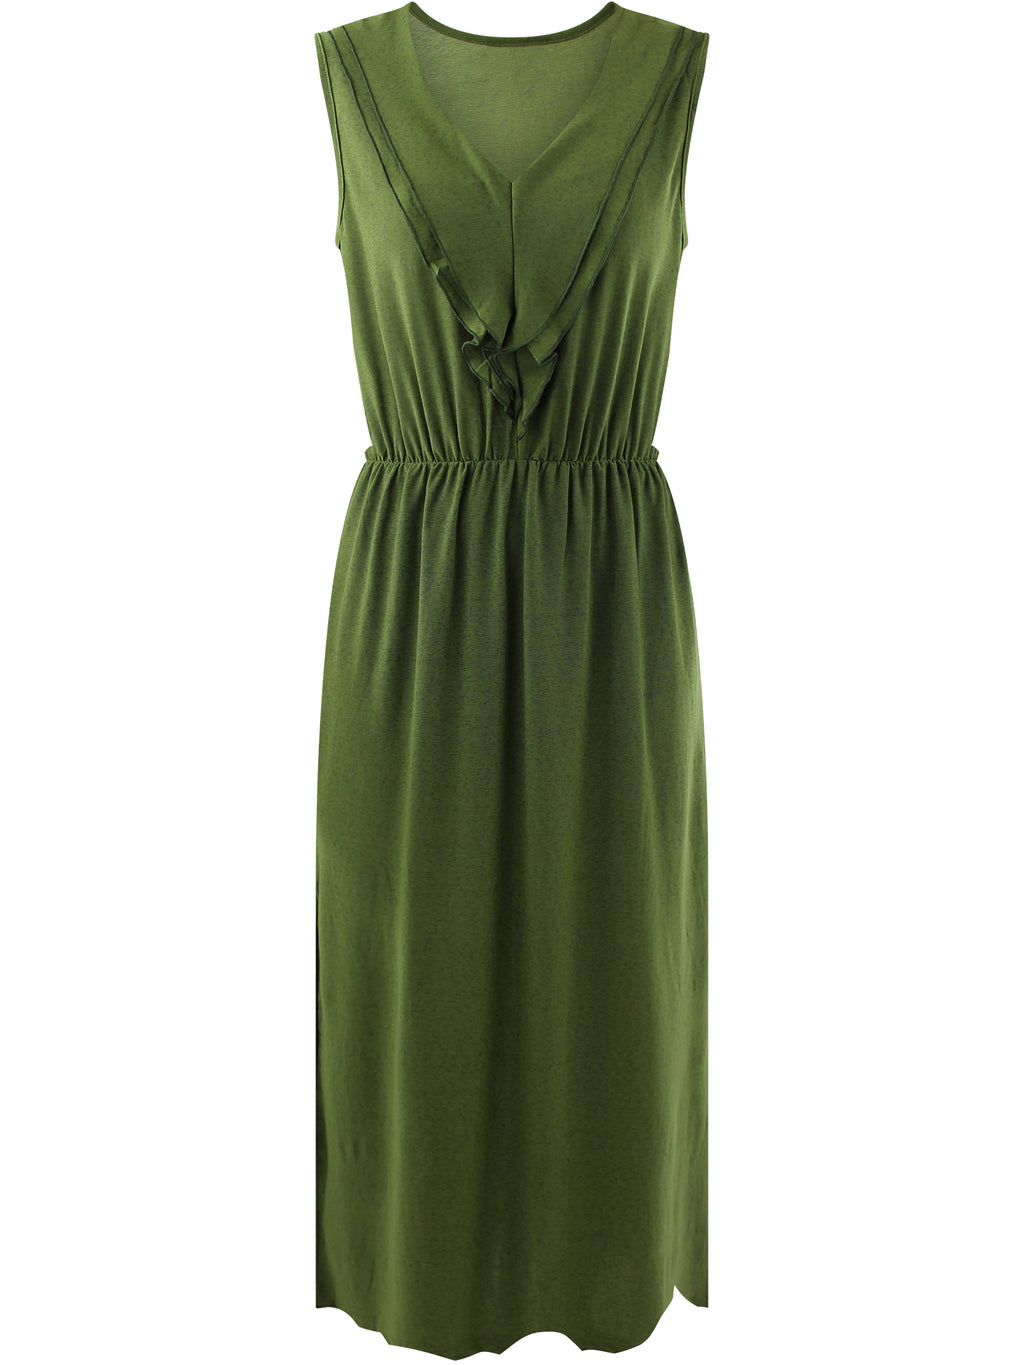 Olive Sleeveless Ruffled Neckline Maxi Dress